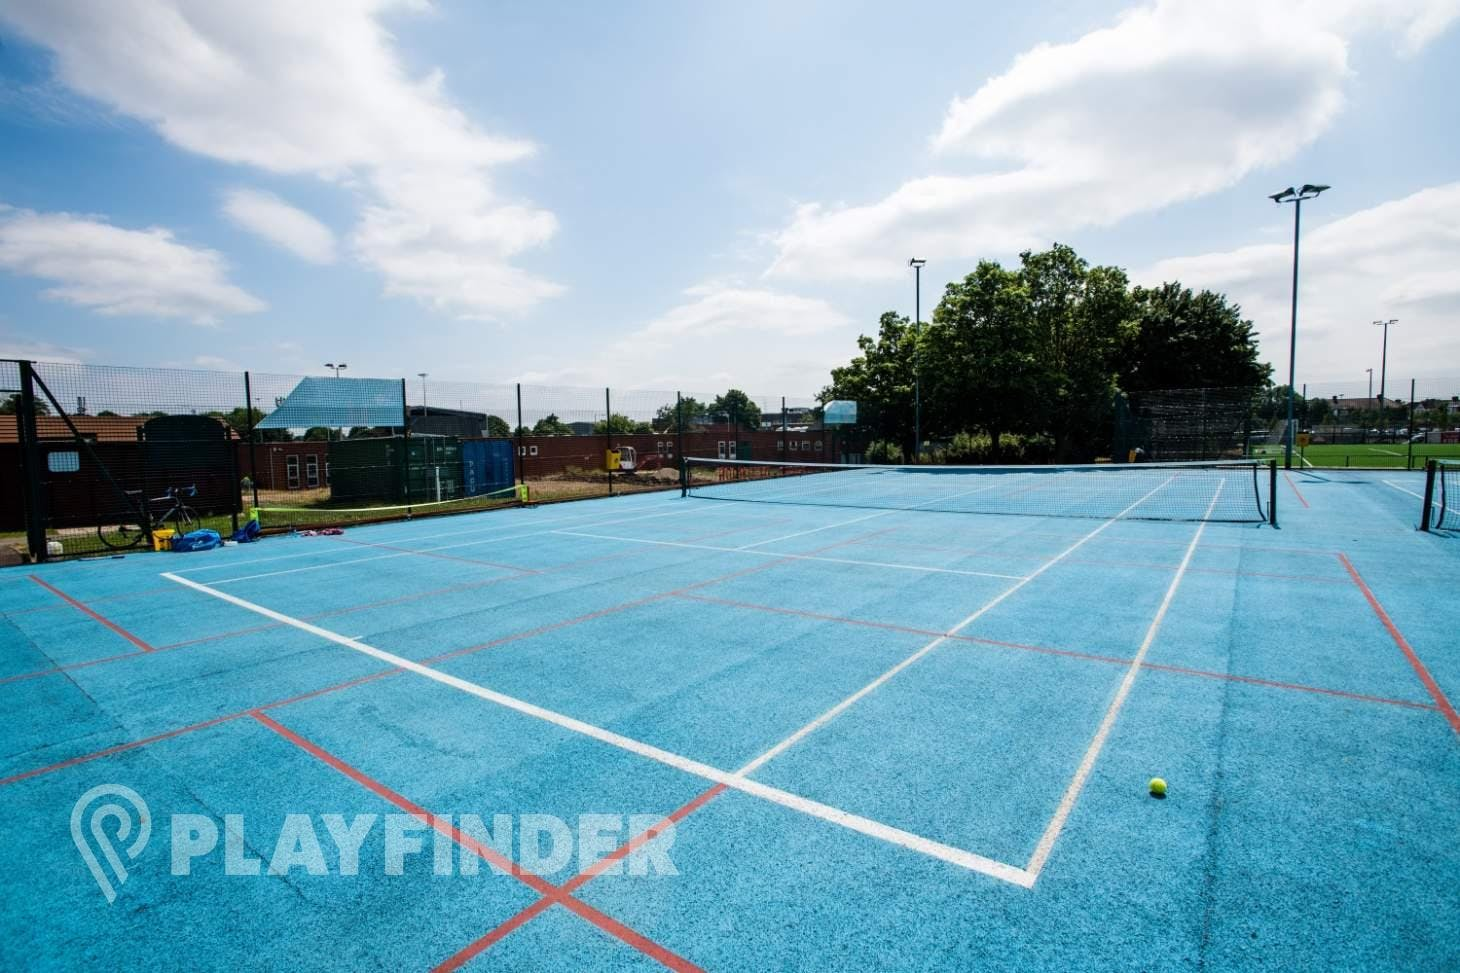 New River Sport & Fitness Outdoor | Hard (macadam) tennis court